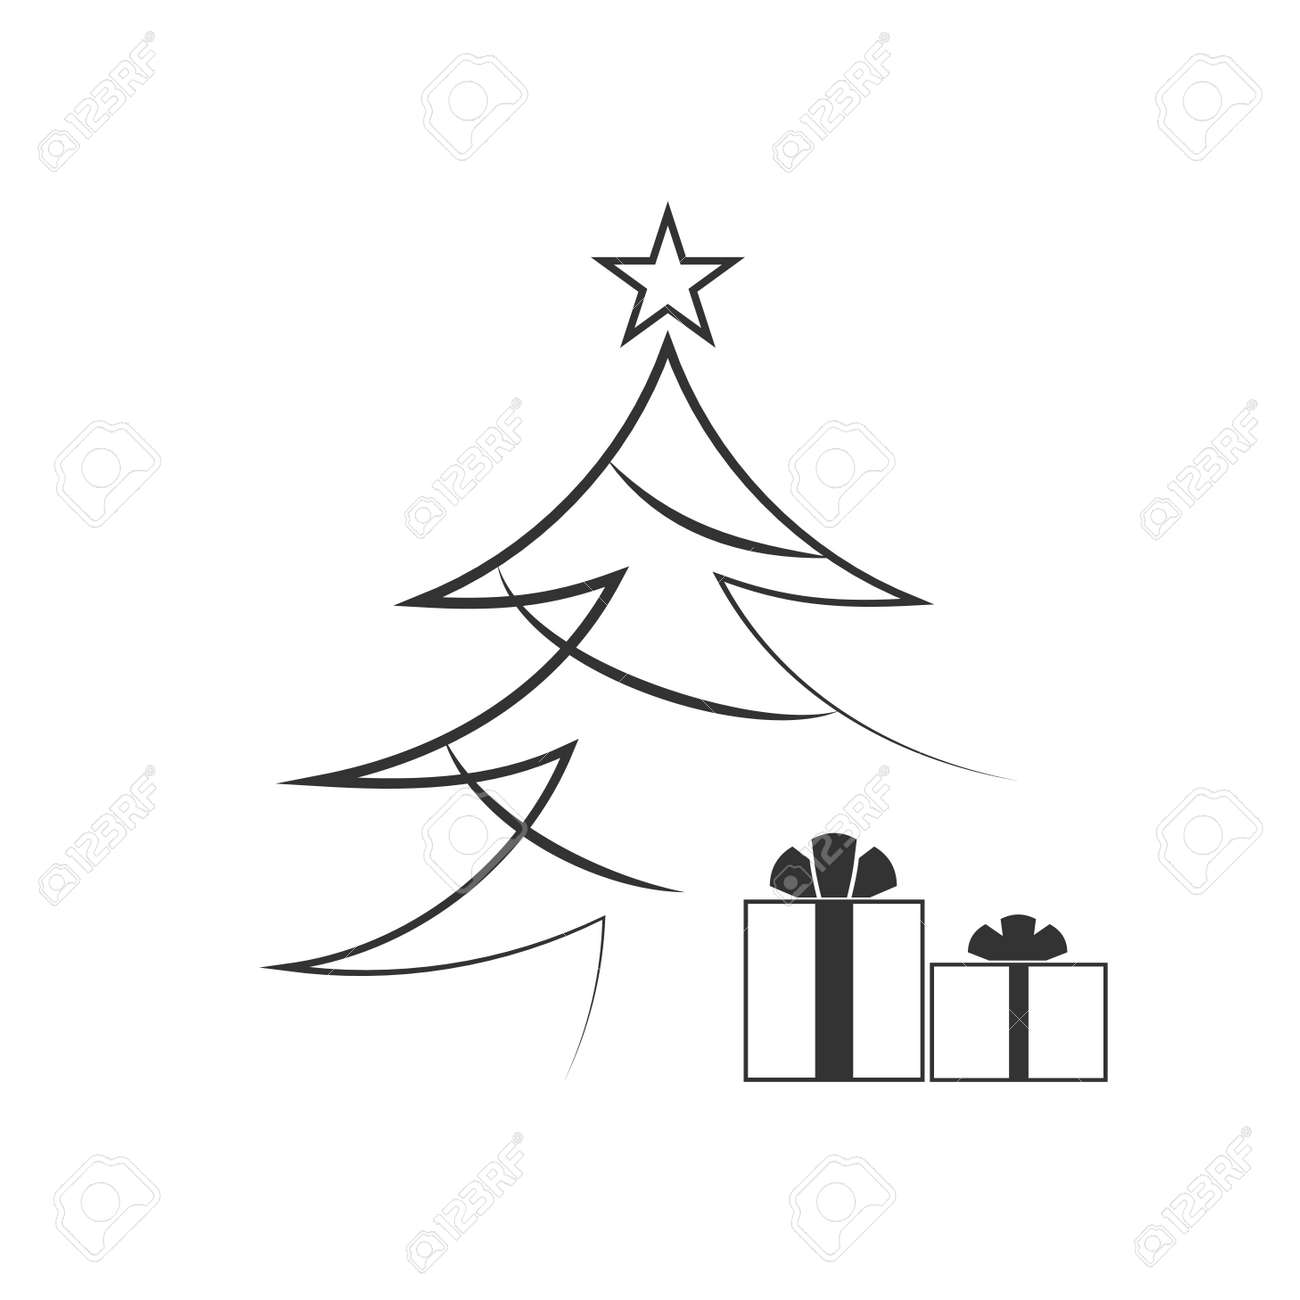 Christmas Tree With Star Gift Cartoon Icon Black Silhouette Decoration Sign Isolated